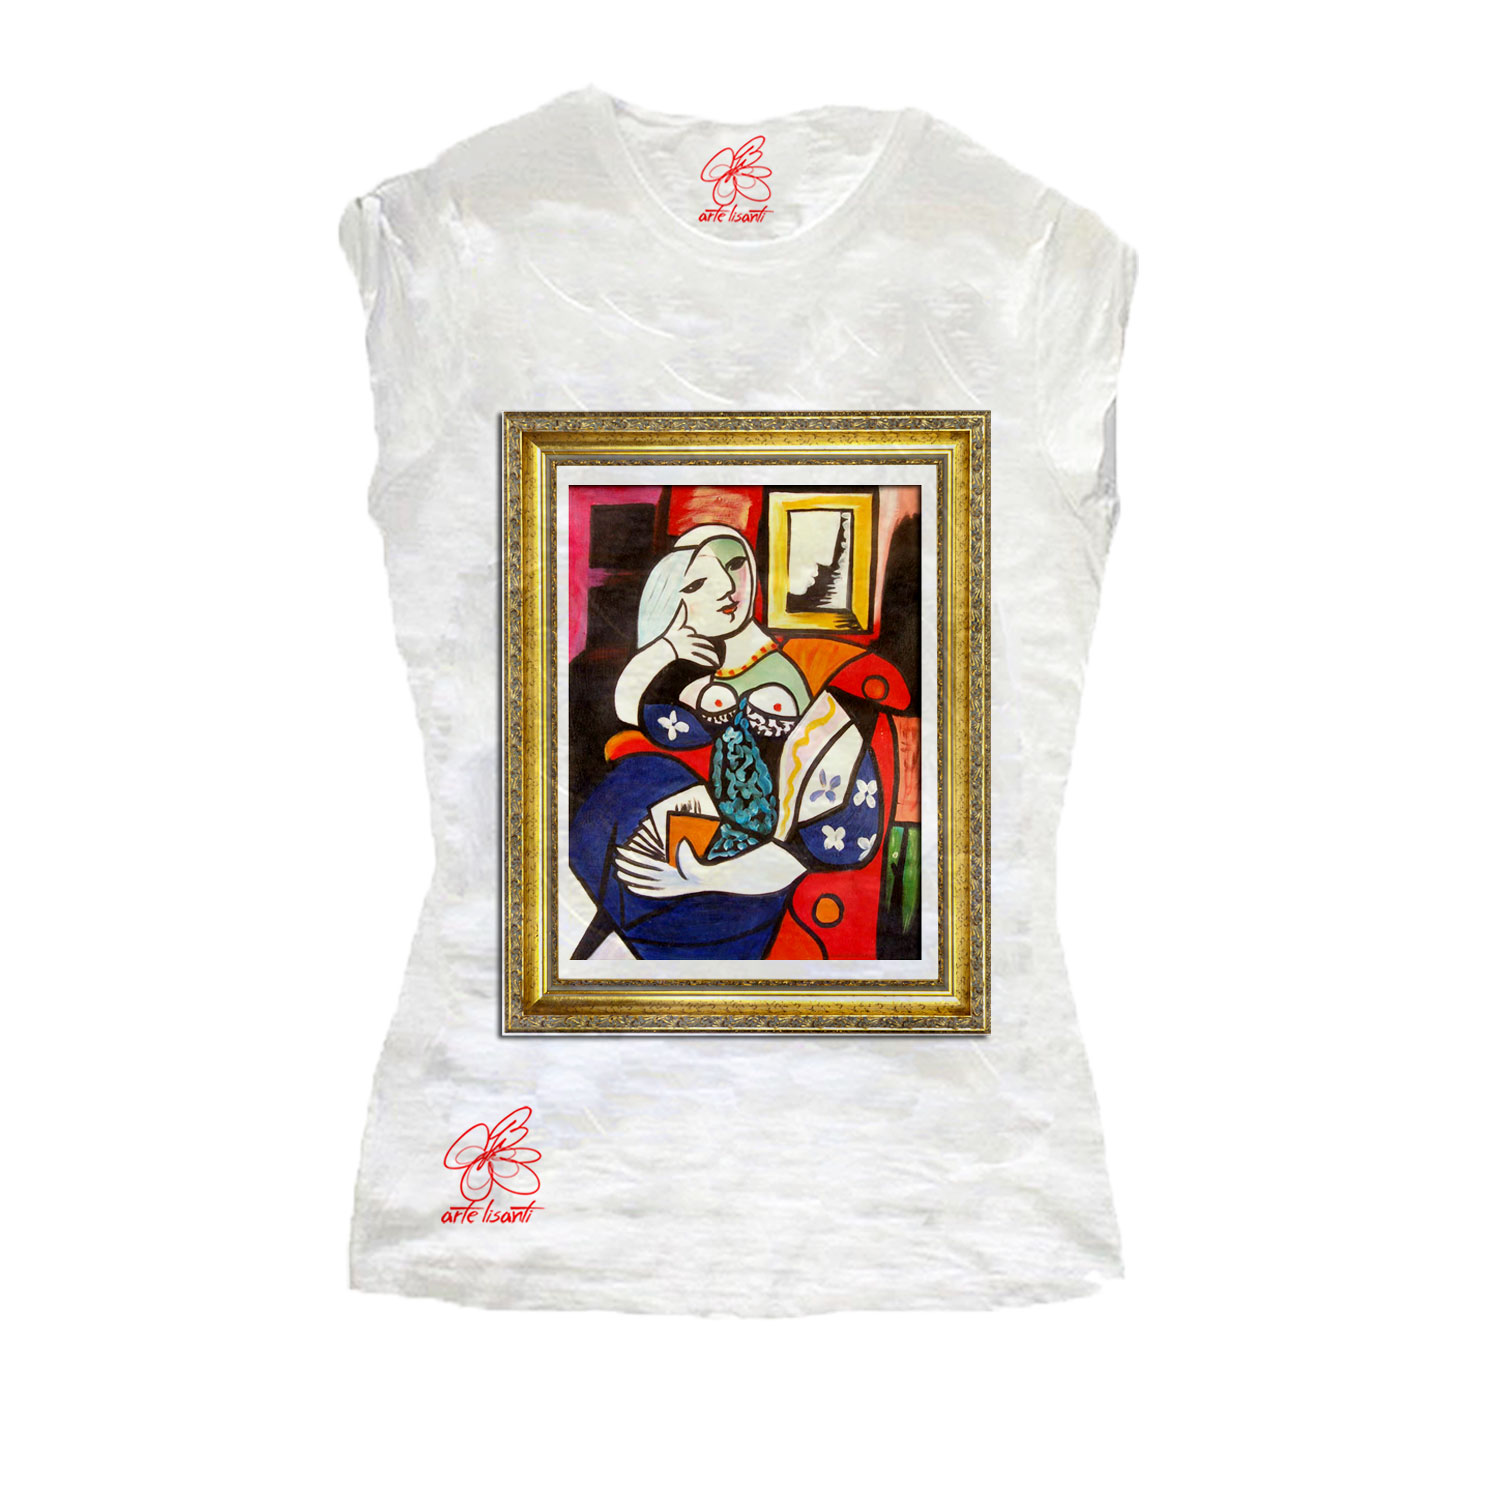 Hand painted t-shirt - Woman Reading by Picasso